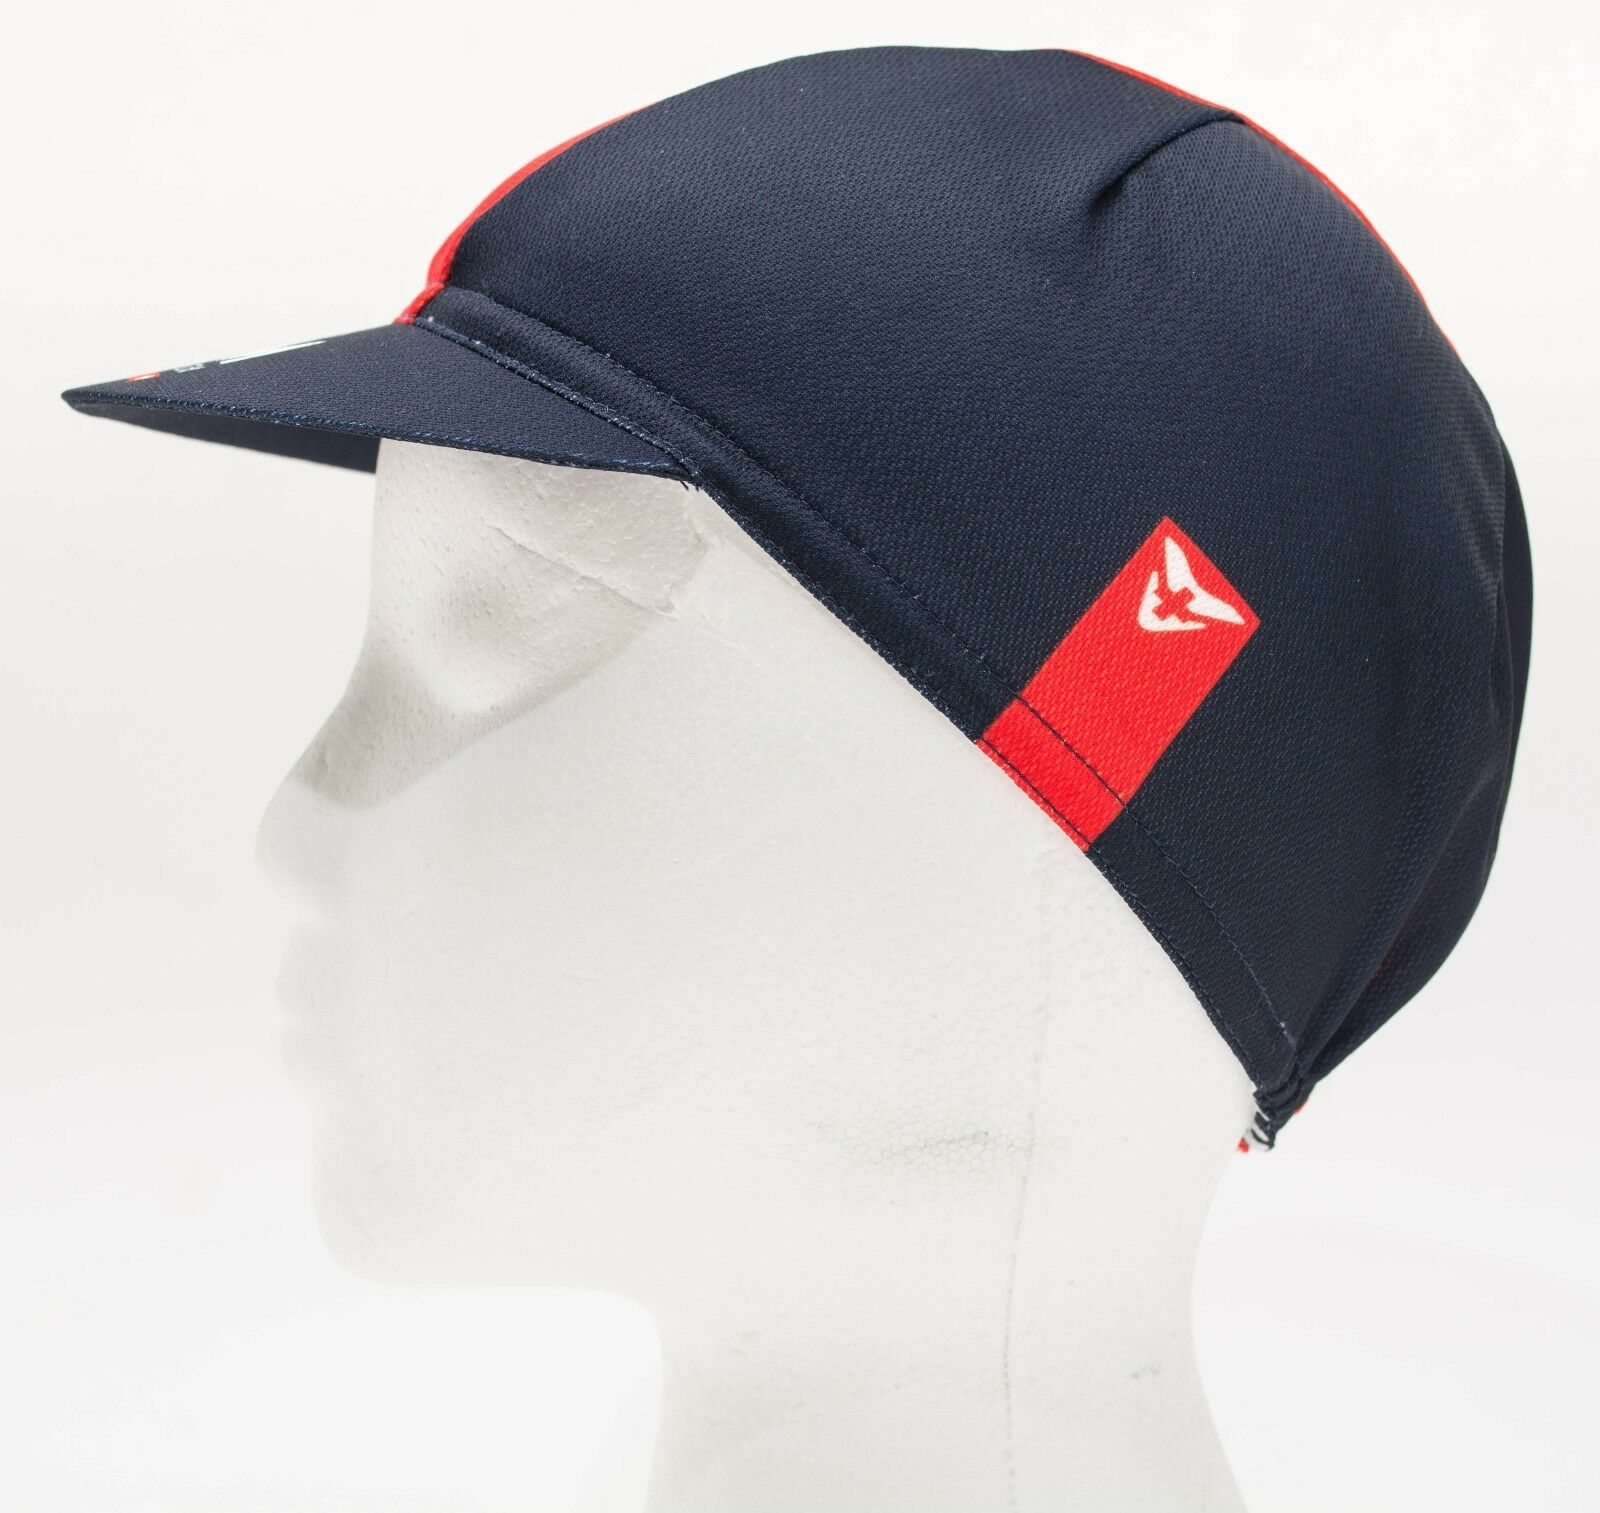 Cuore Adult Moisture Wick Road Cycling Cap One Size Team IAM Pro Cycling Blue